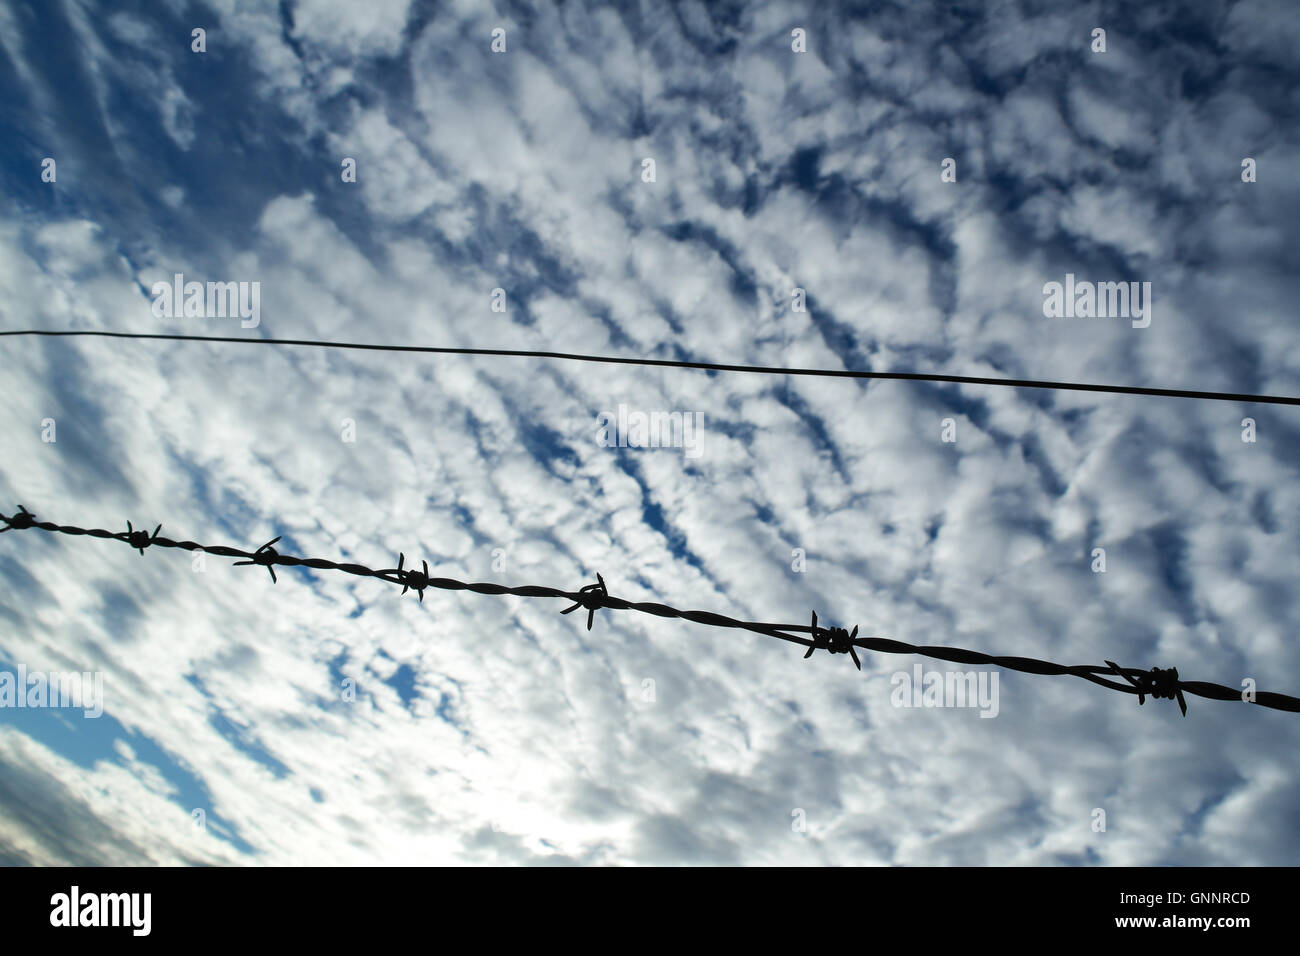 Barb Wire Stock Photos & Barb Wire Stock Images - Alamy